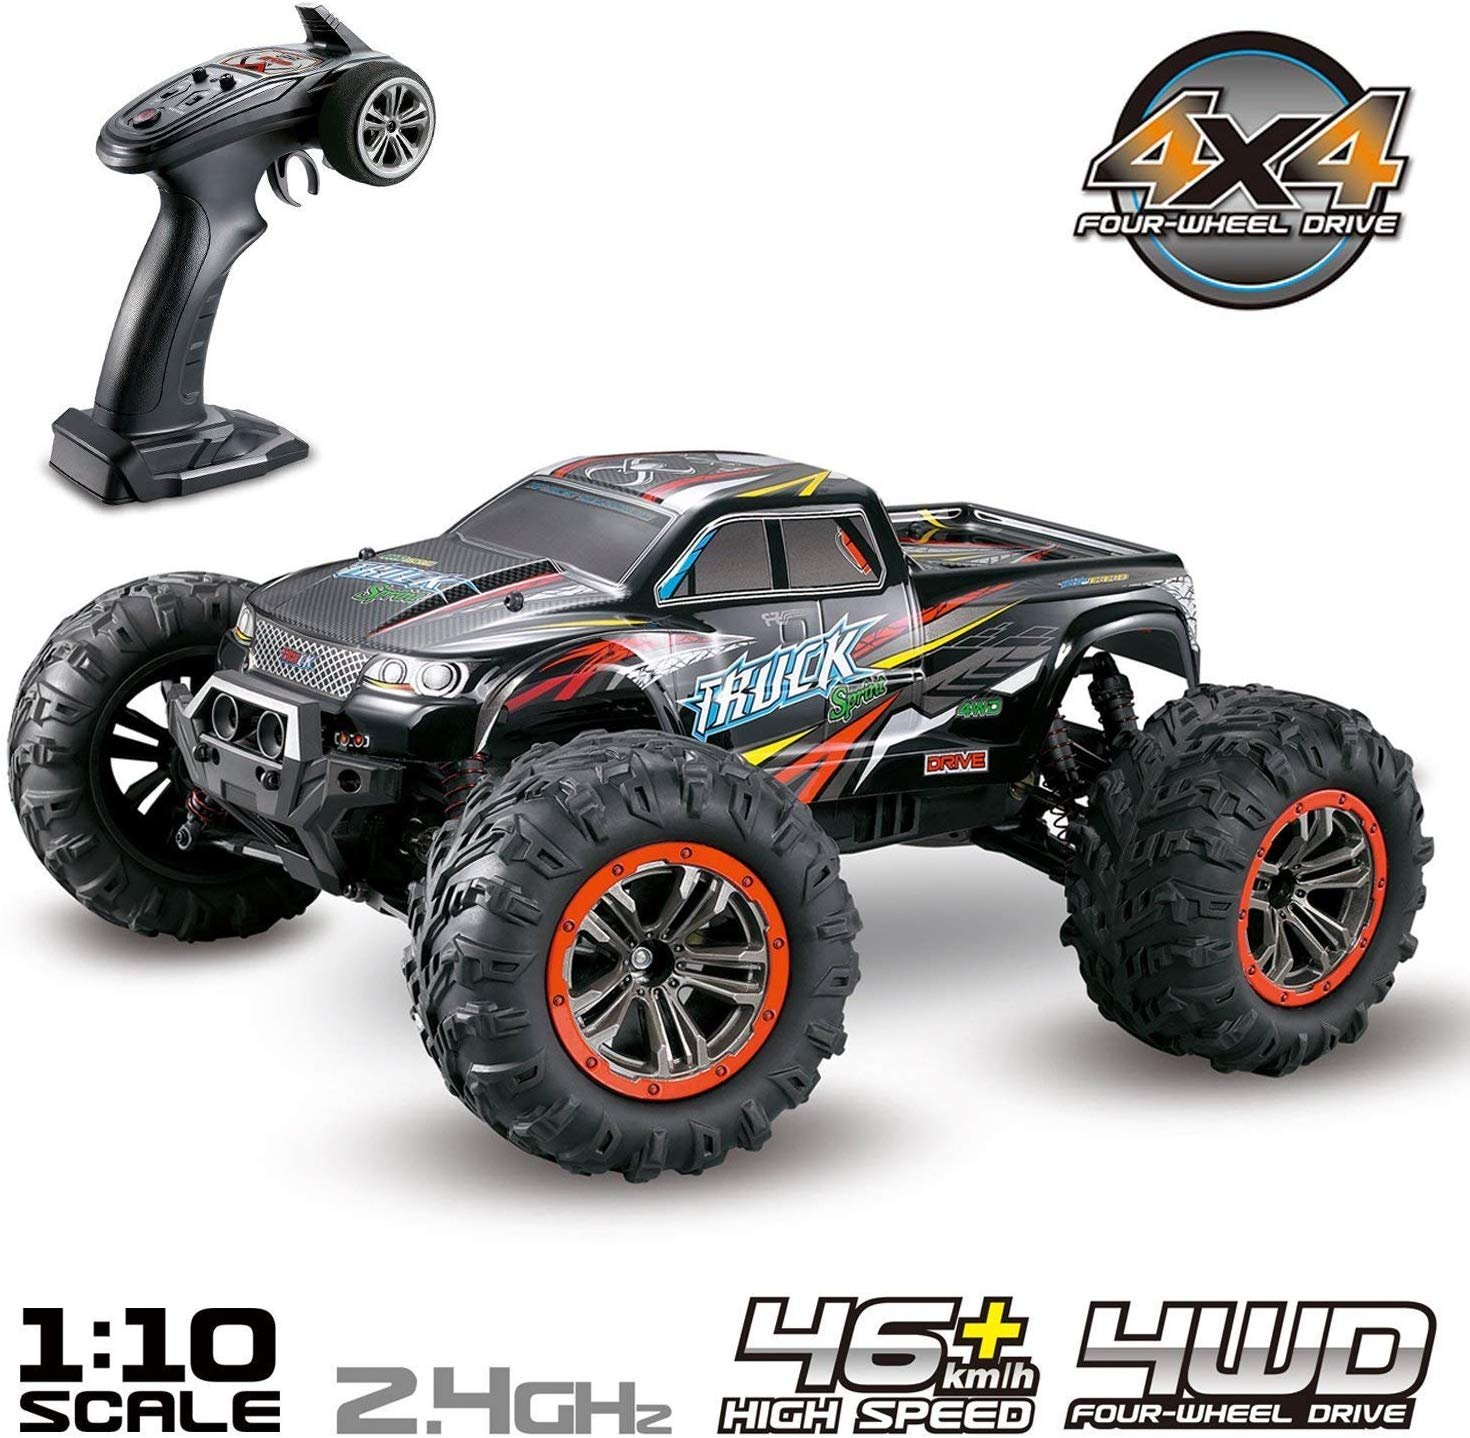 MONSTER TRUCK XLH 9125 1/10 RTR 46 KM/H referencia 9125 9125